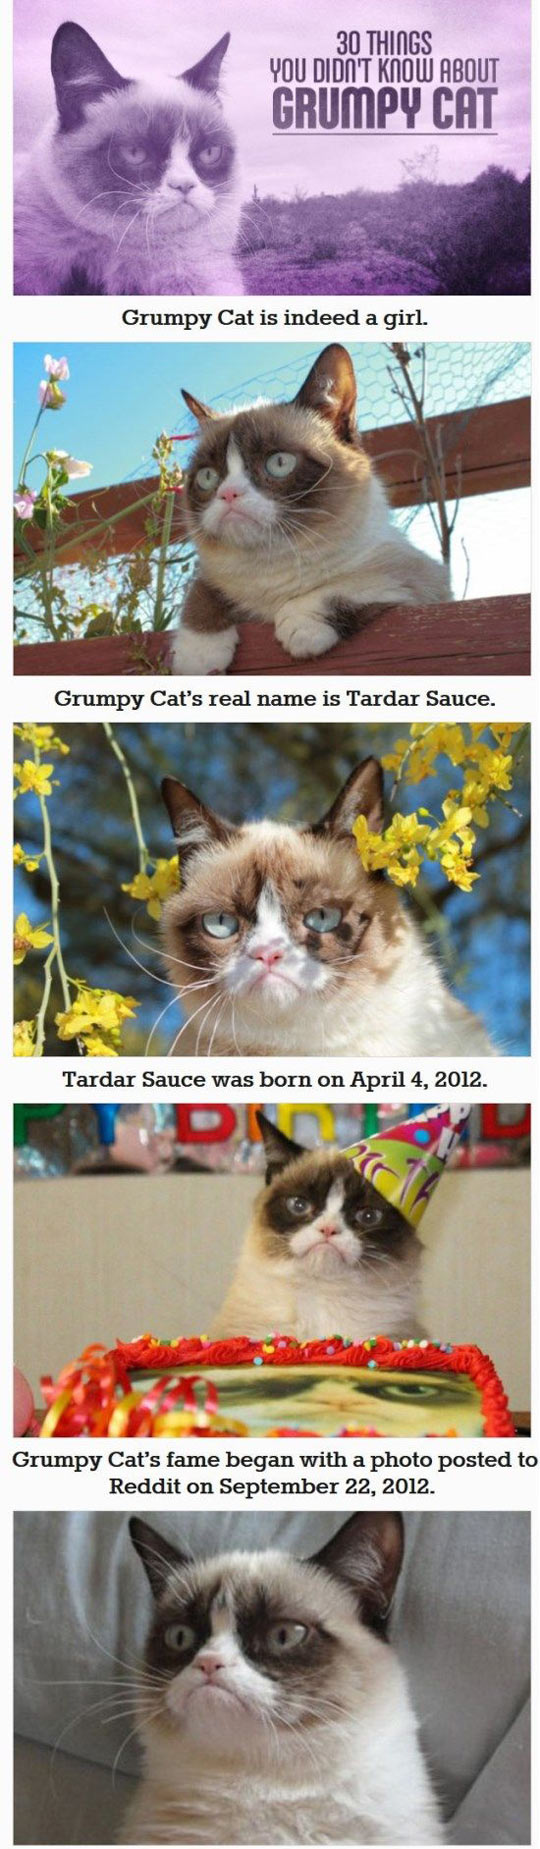 funny-Grumpy-cat-fact-you-dont-know